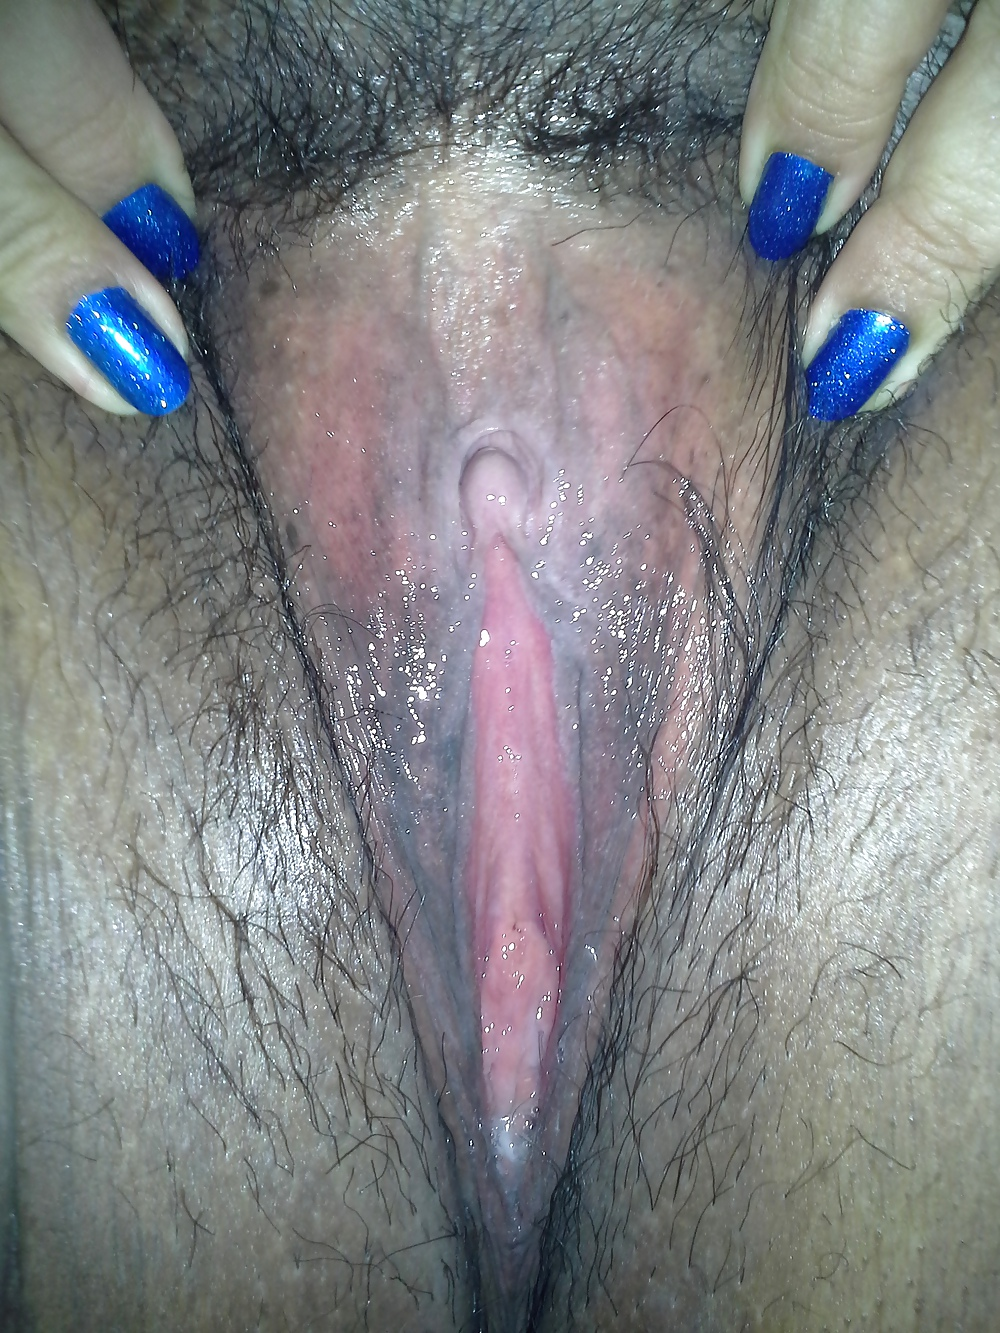 girls pics Mexican pussy